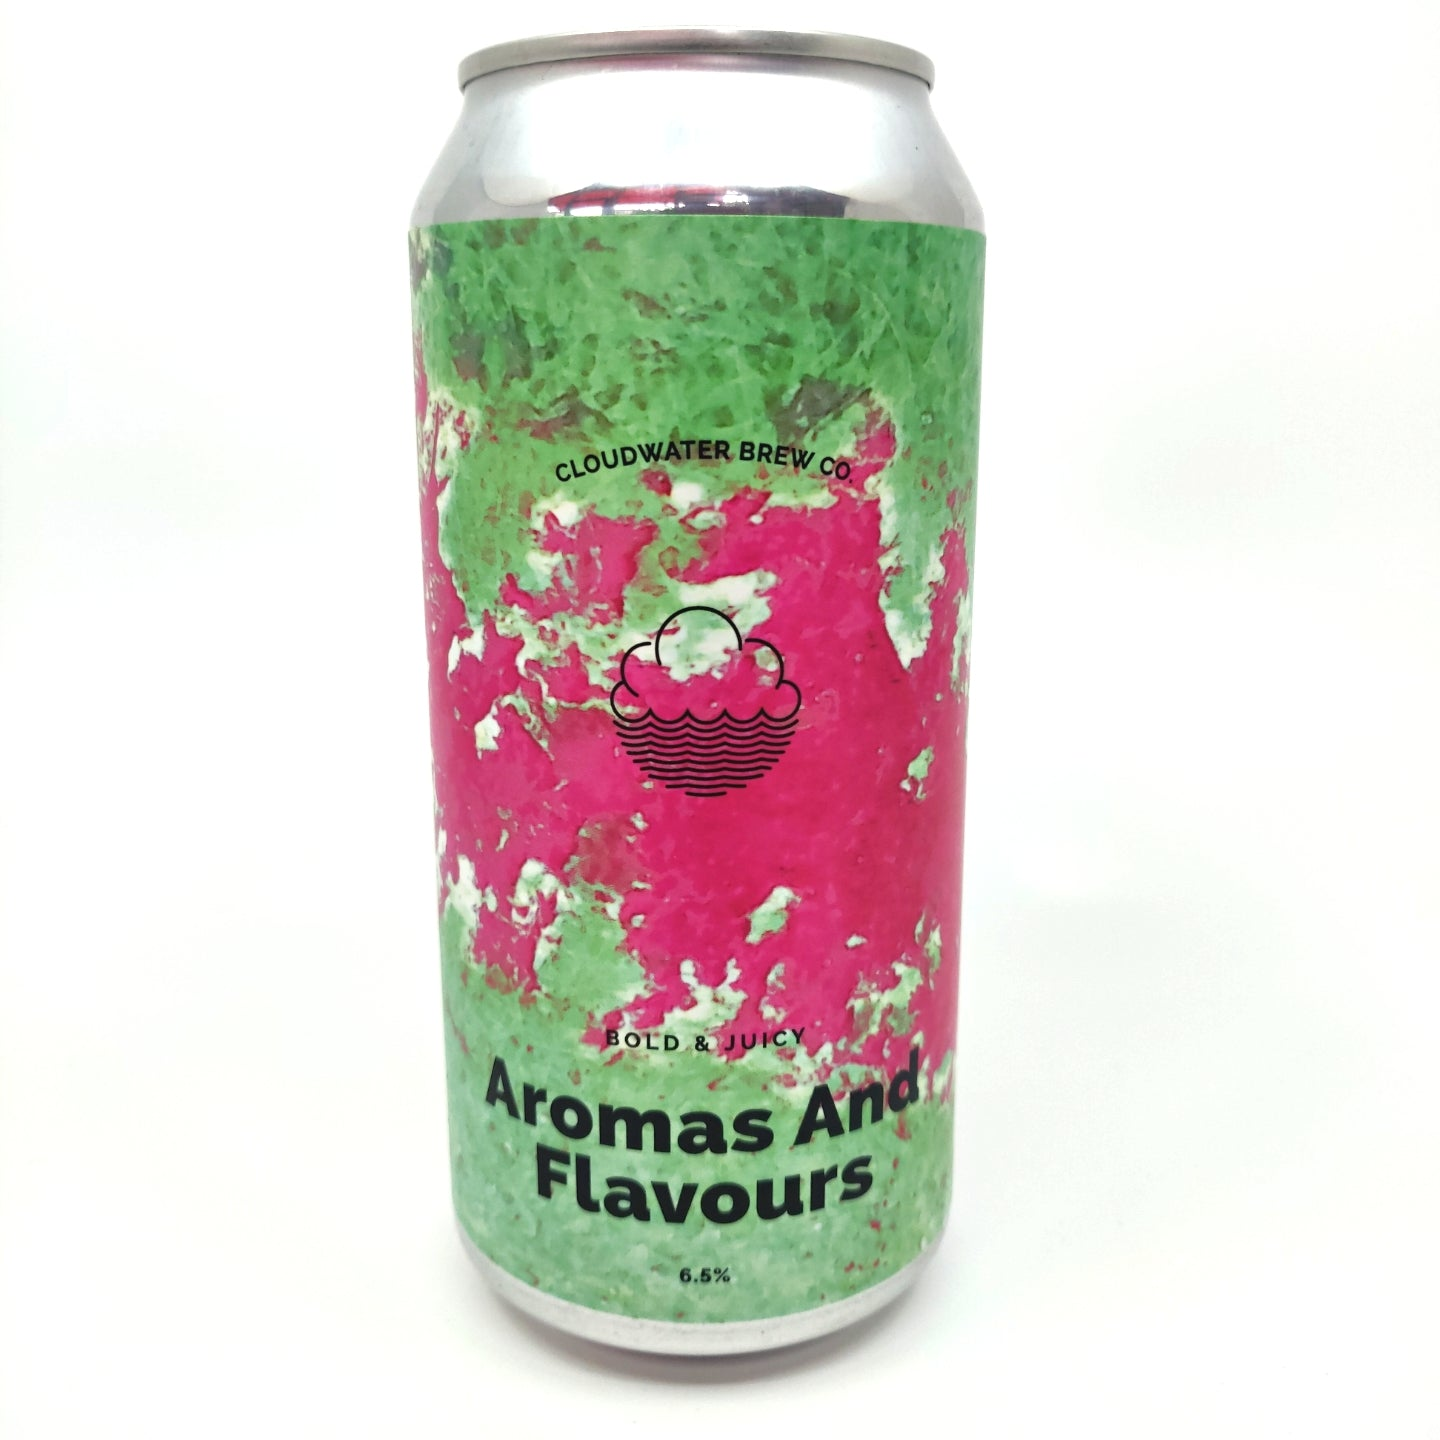 Cloudwater Aromas & Flavours DDH IPA 6.5% (440ml can)-Hop Burns & Black